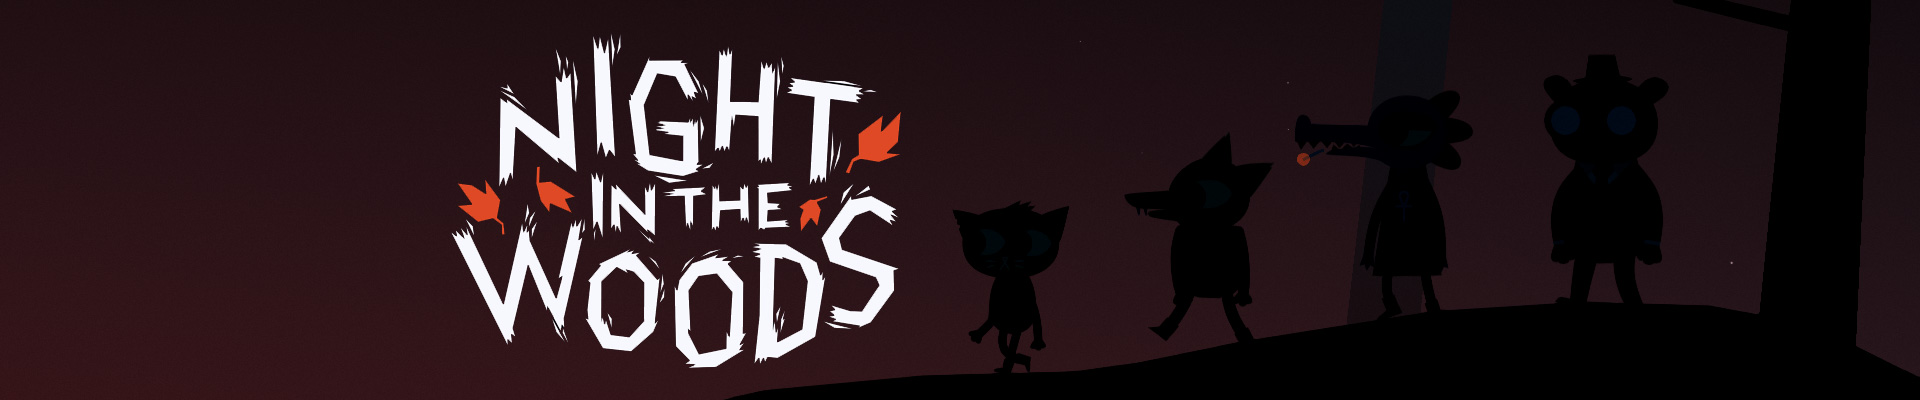 Мысли про: Night in the Woods